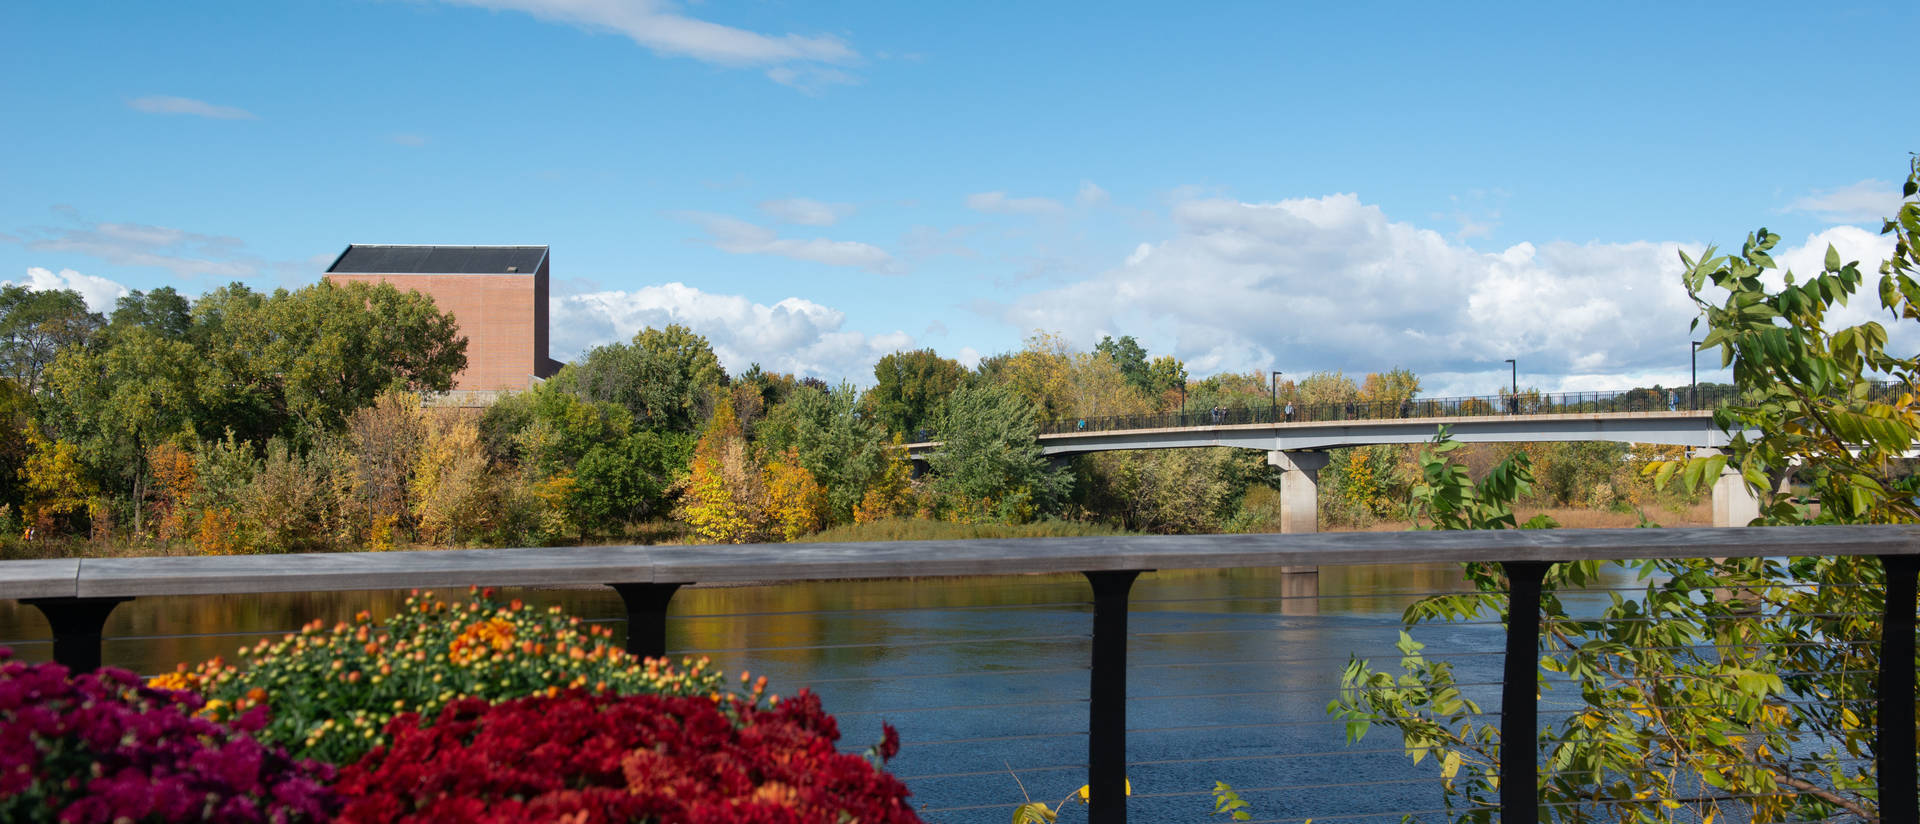 The Haas Fine Arts Center exterior can be scene in this lower campus view of the Chippewa River.